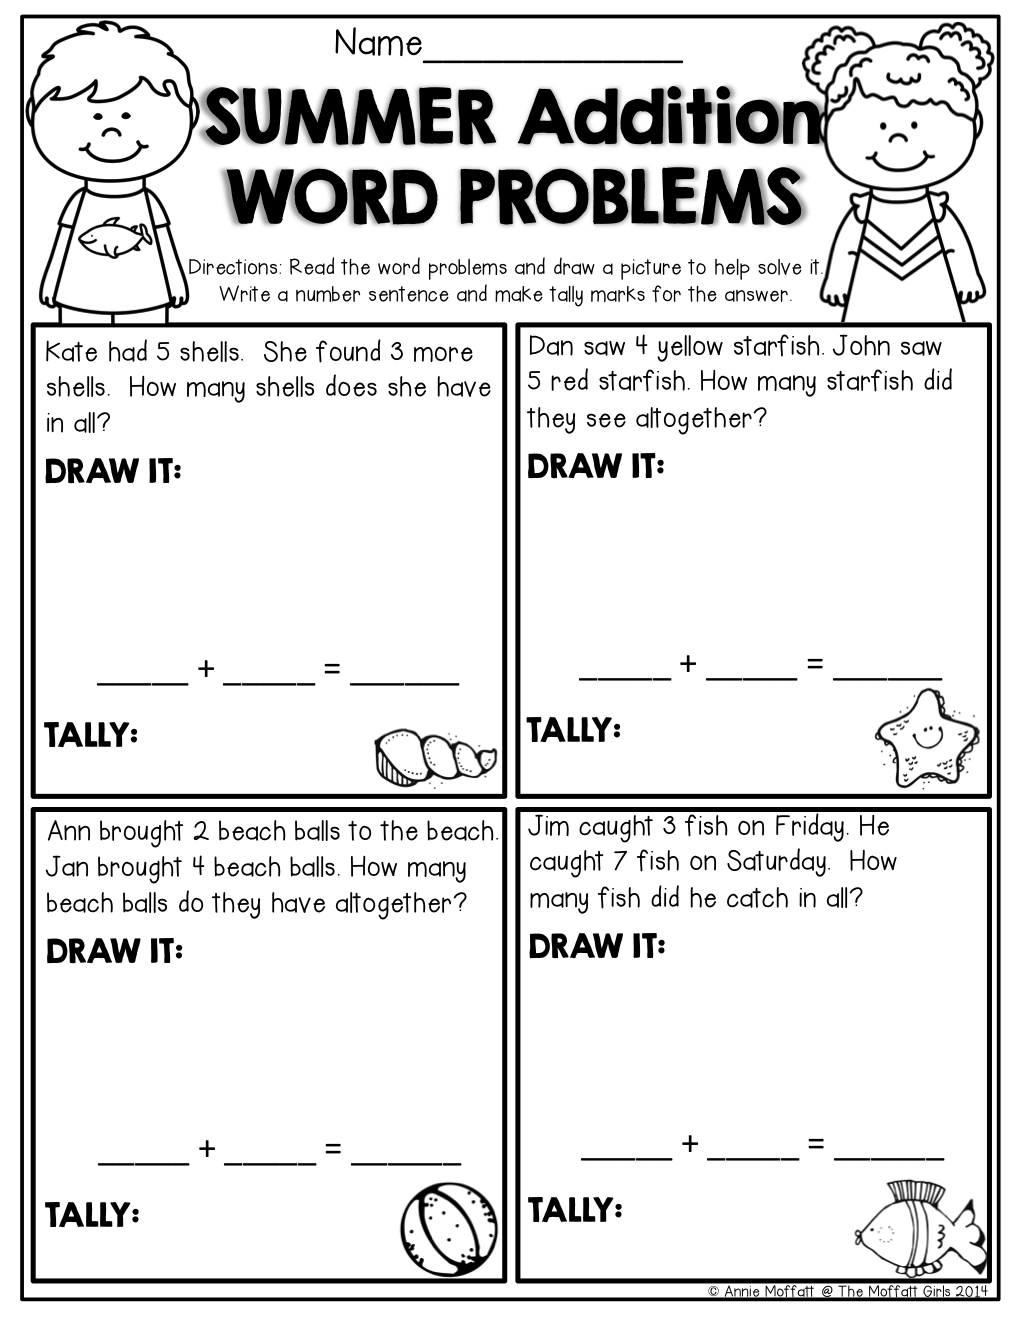 Summer Review No Prep Kindergarten Word Problem Worksheets Math Word Problems Word Problems Kindergarten - 36+ Addition Word Problems Kindergarten Worksheets Pictures